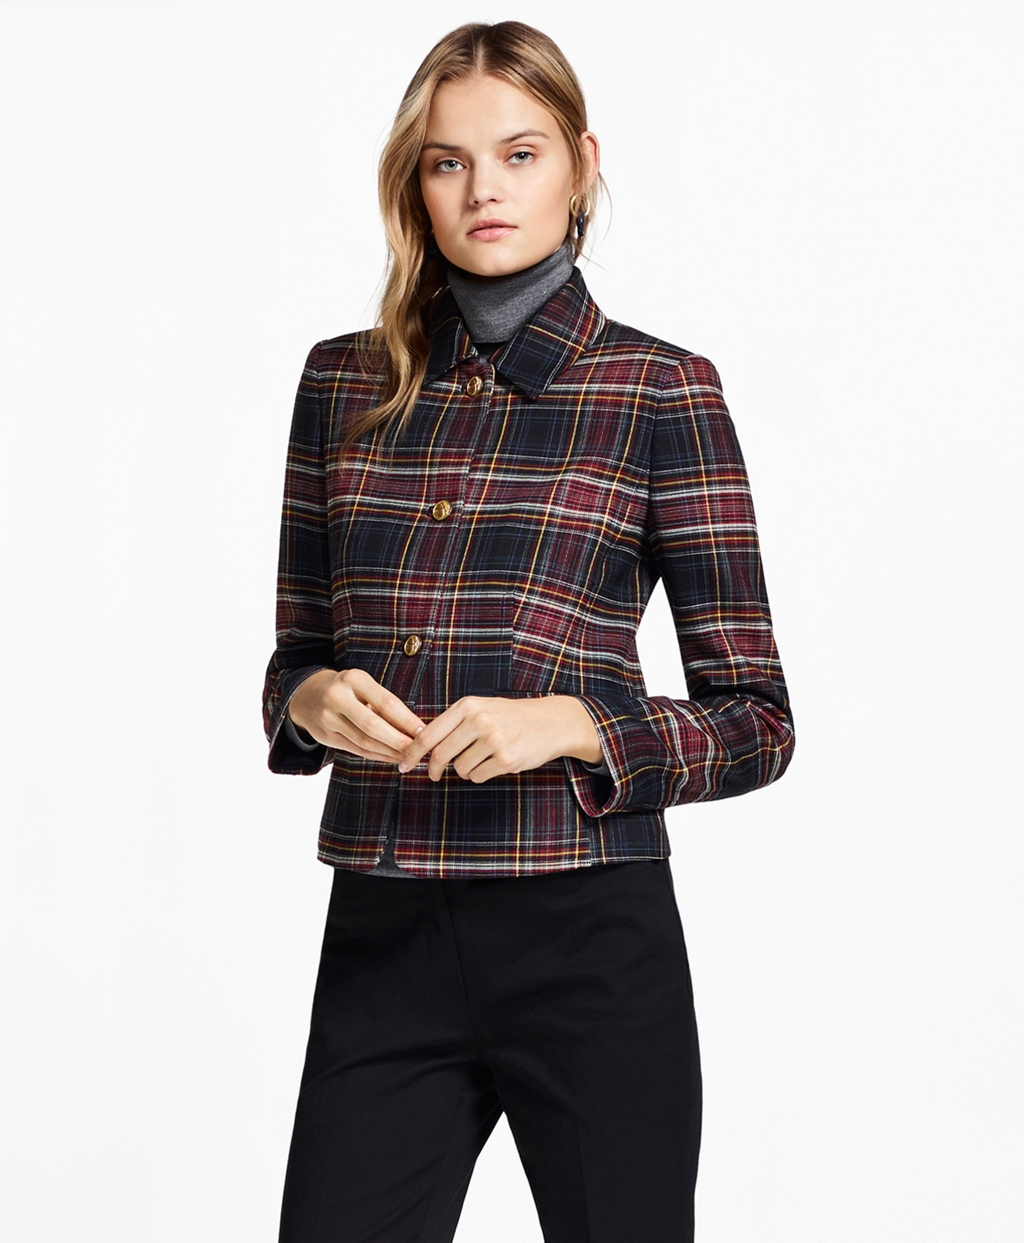 1930s Style Coats, Jackets | Art Deco Outerwear Brooks Brothers Womens Plaid Double-Face Wool-Blend Jacket $149.40 AT vintagedancer.com